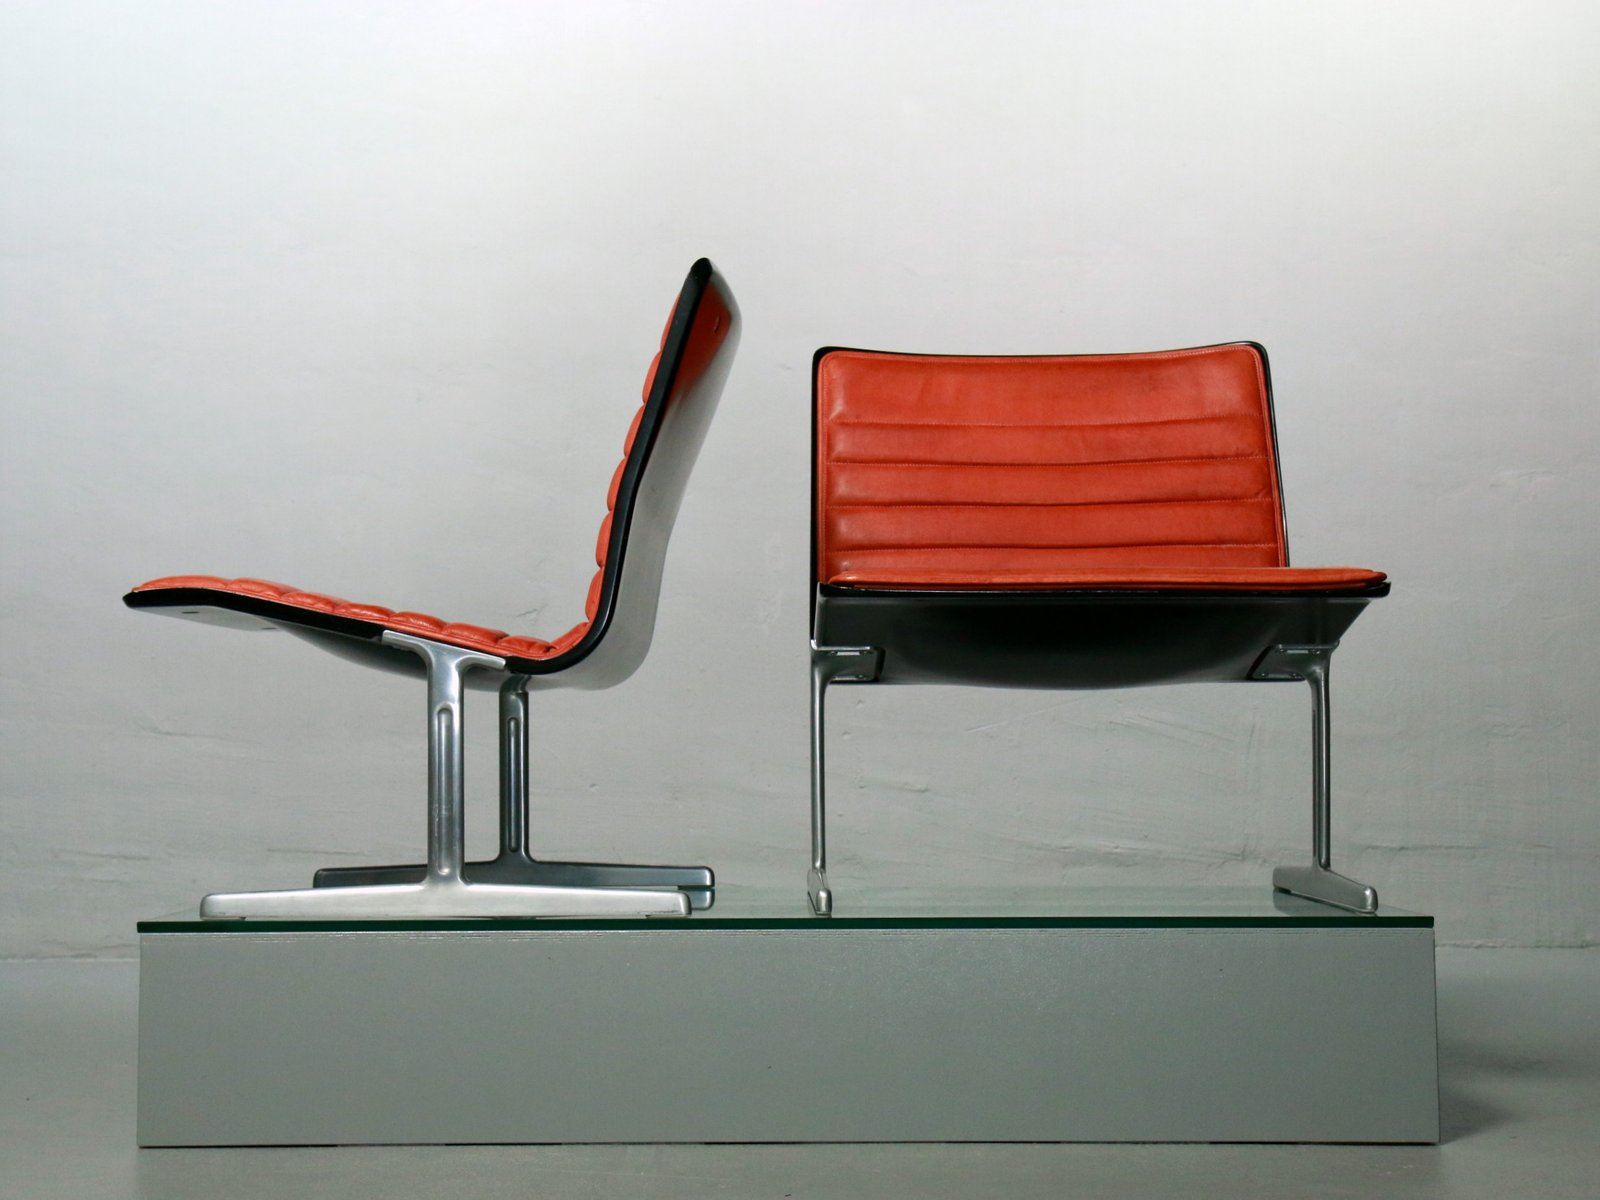 Dieter Rams Möbel 601 rz 60 lounge chairs by dieter rams for vitsoe zapf 1960s set